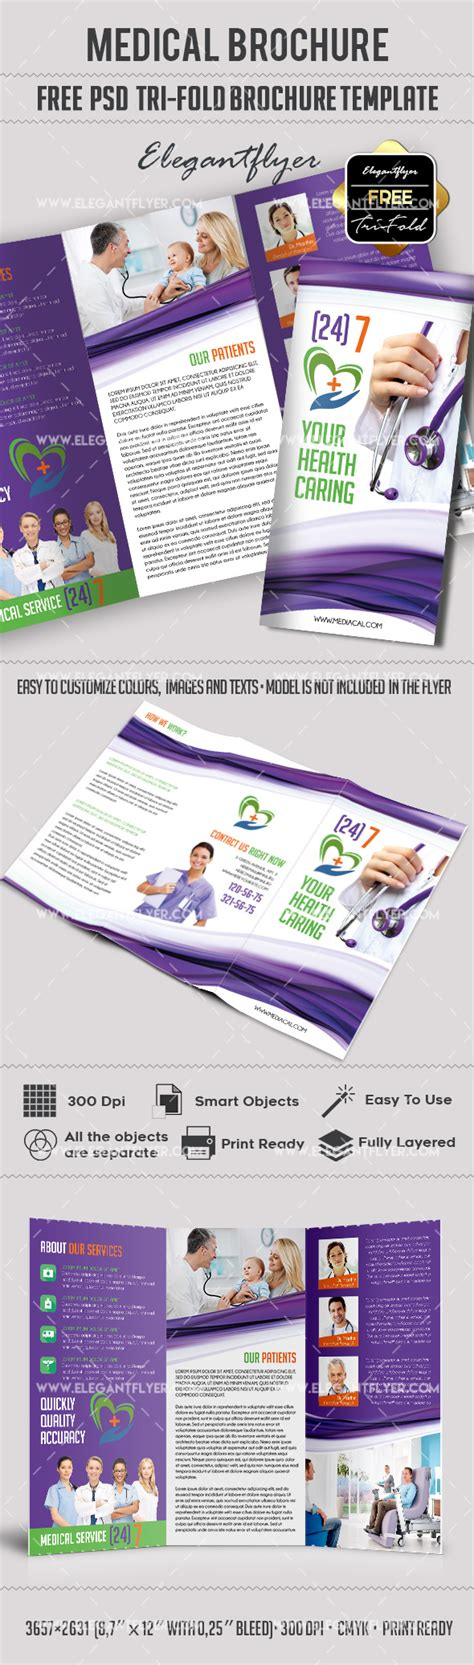 healthcare brochure templates free download download medical free tri fold psd brochure template